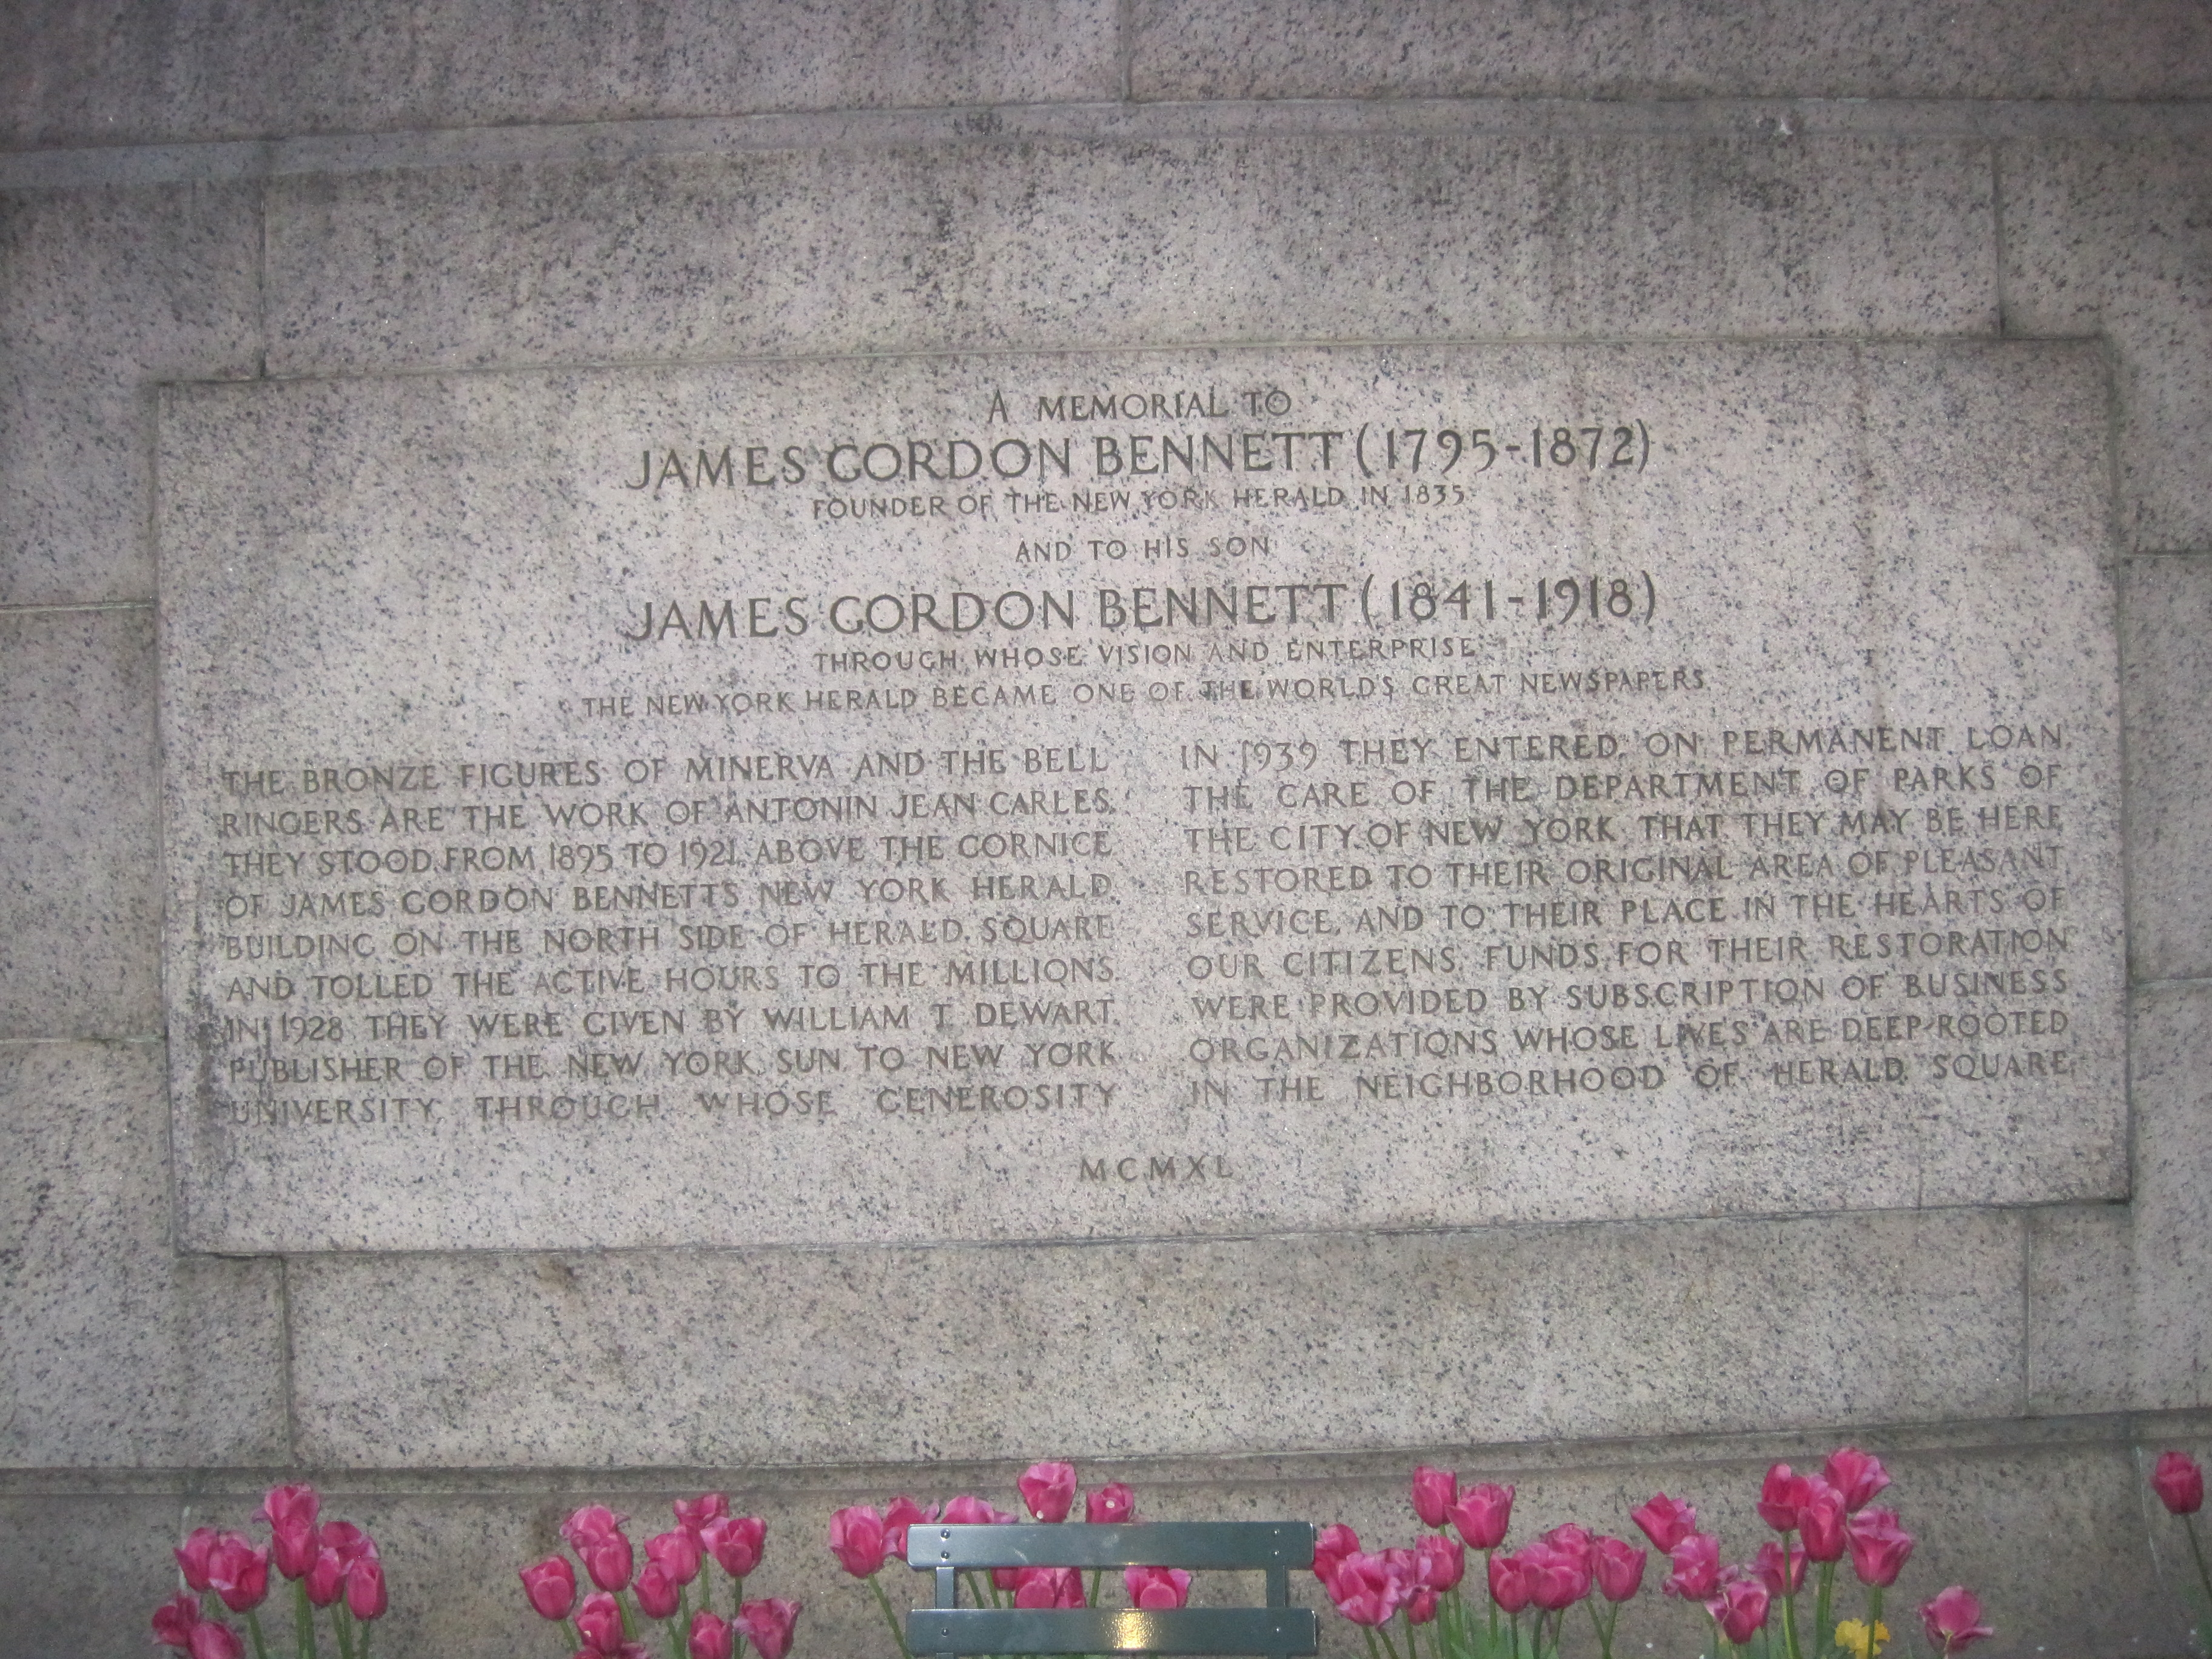 James Gordon Bennett Memorial marker (image from Historic Markers Database)